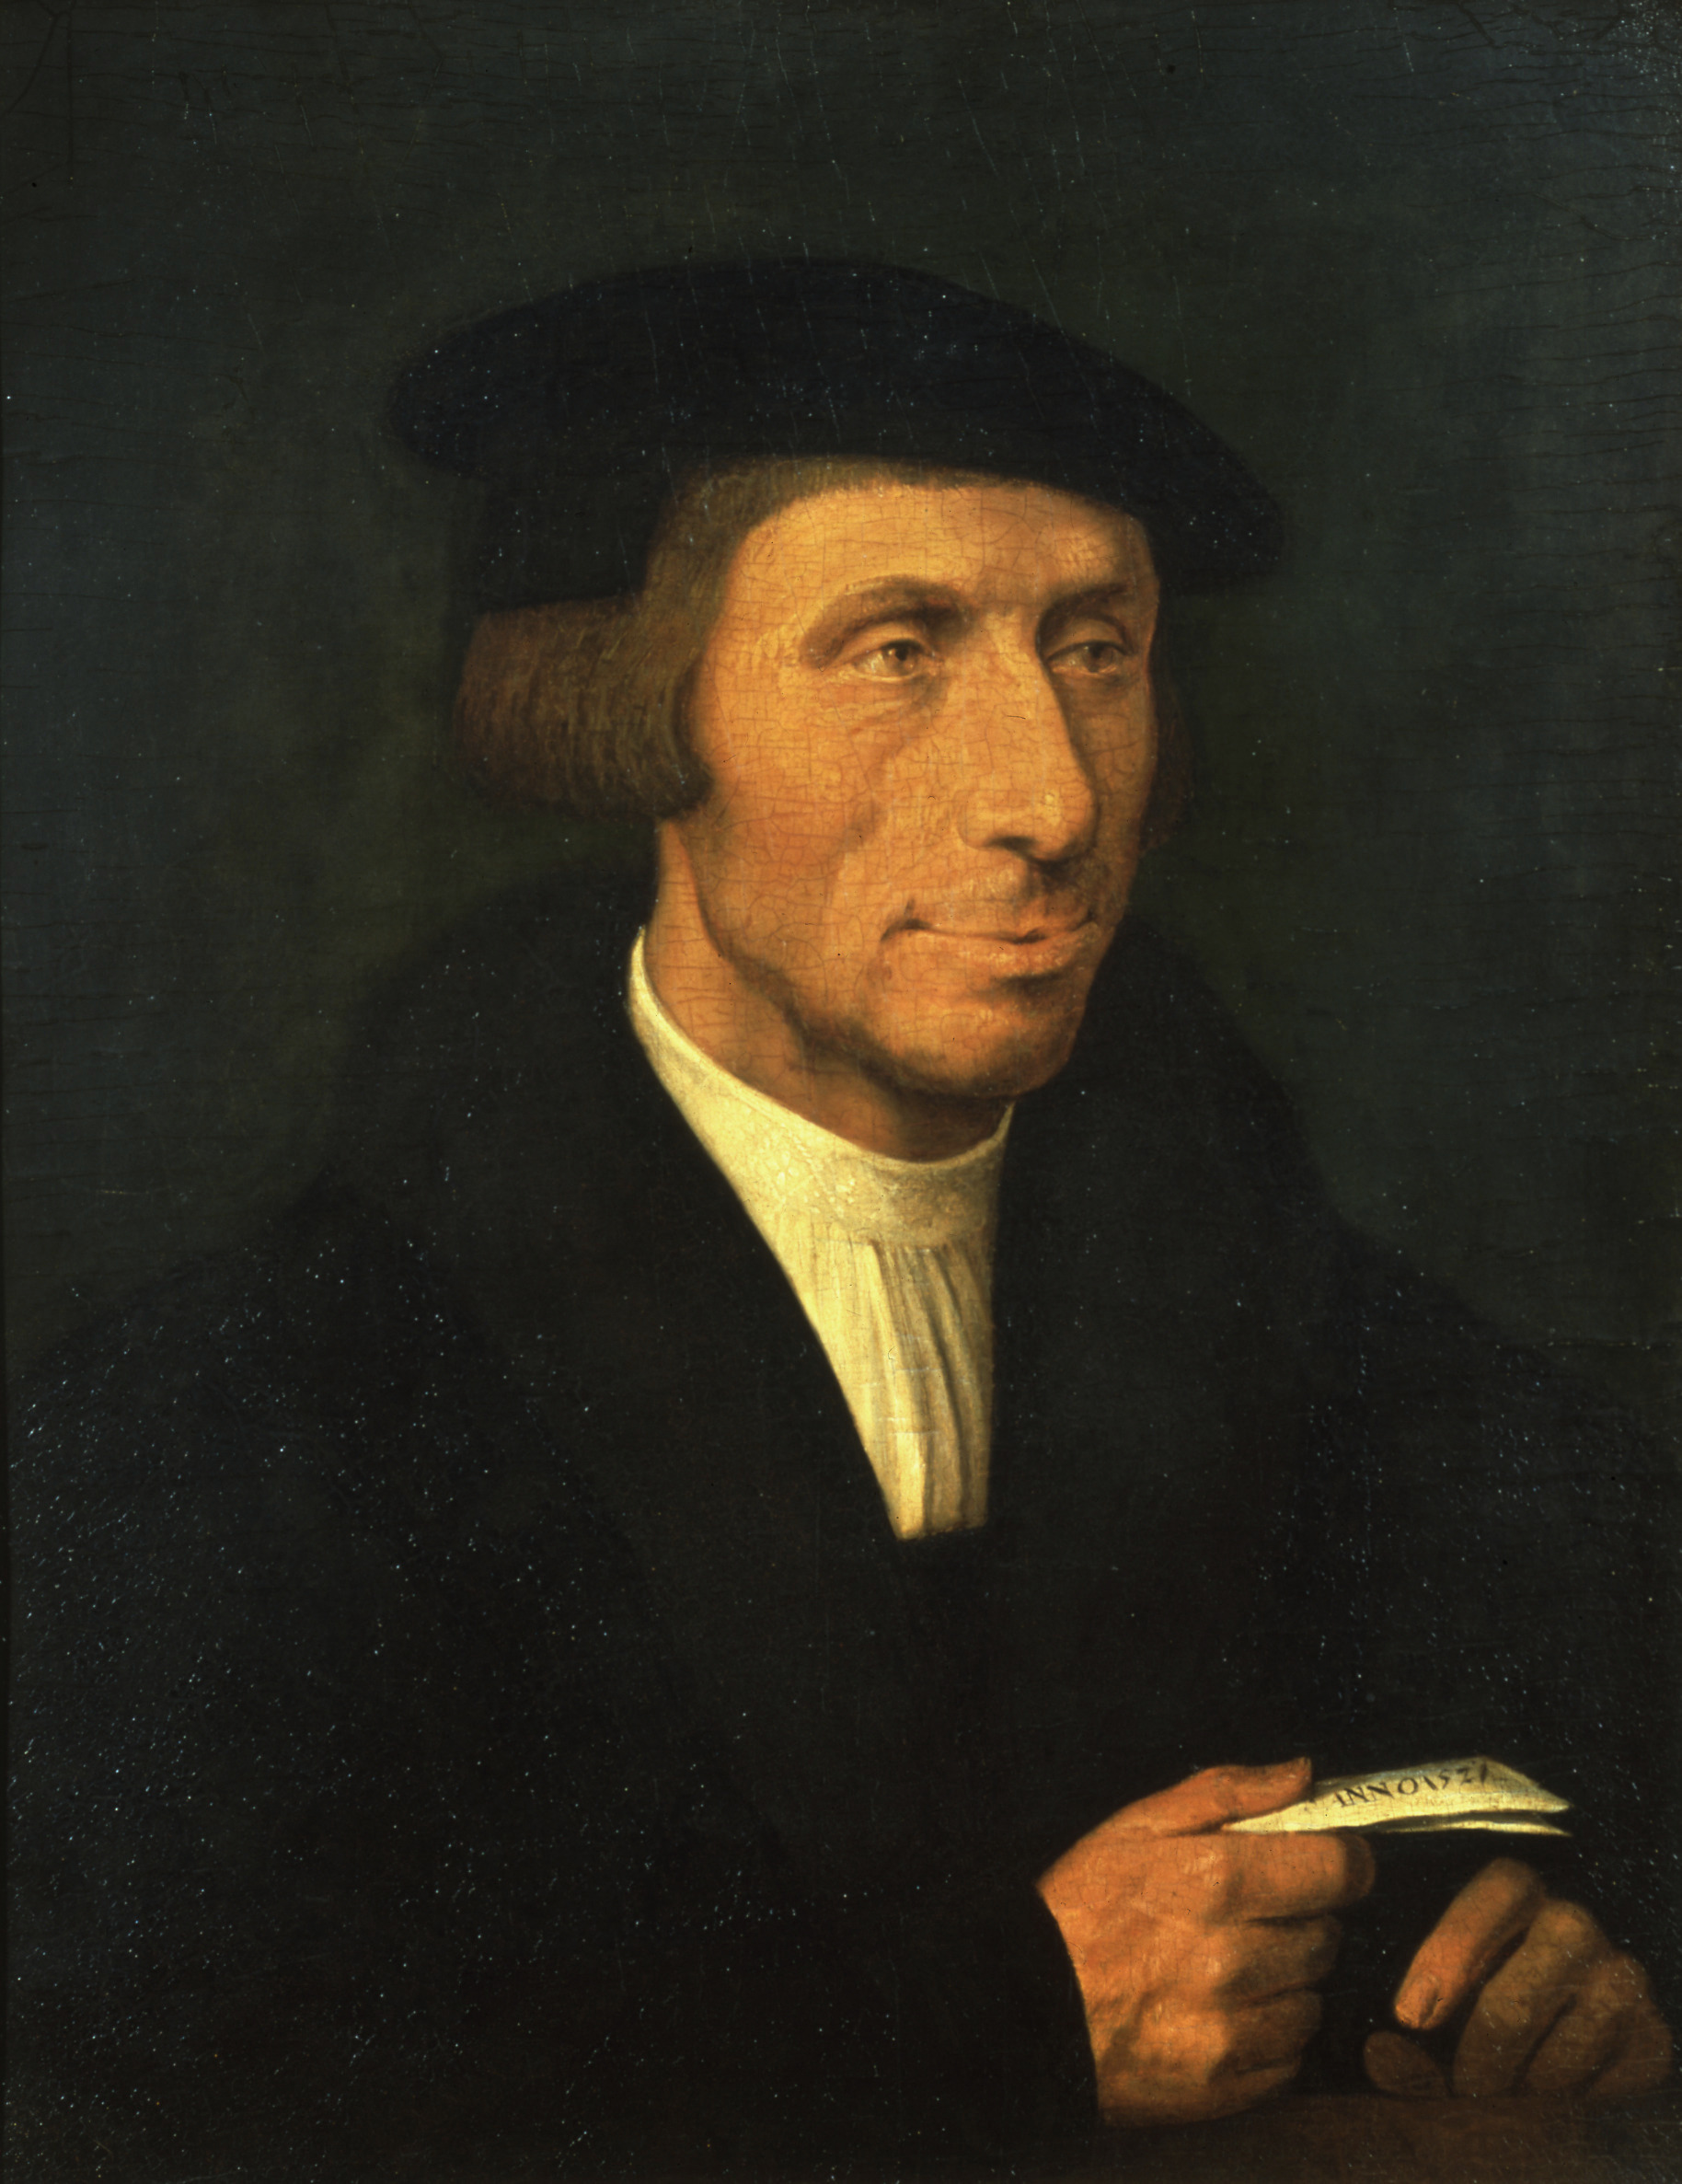 A likely portrait of Thomas Linacre